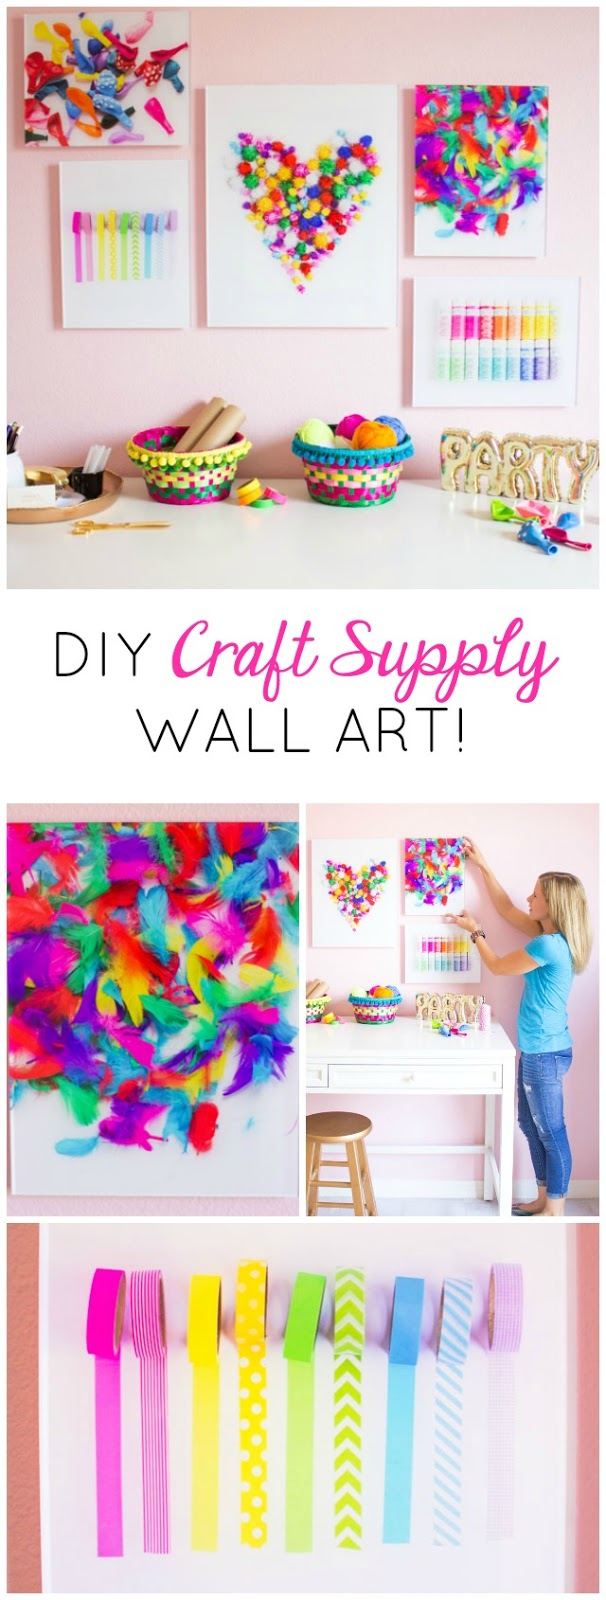 Turn snapshots of your favorite craft supplies into fun wall art for your office or craft room!